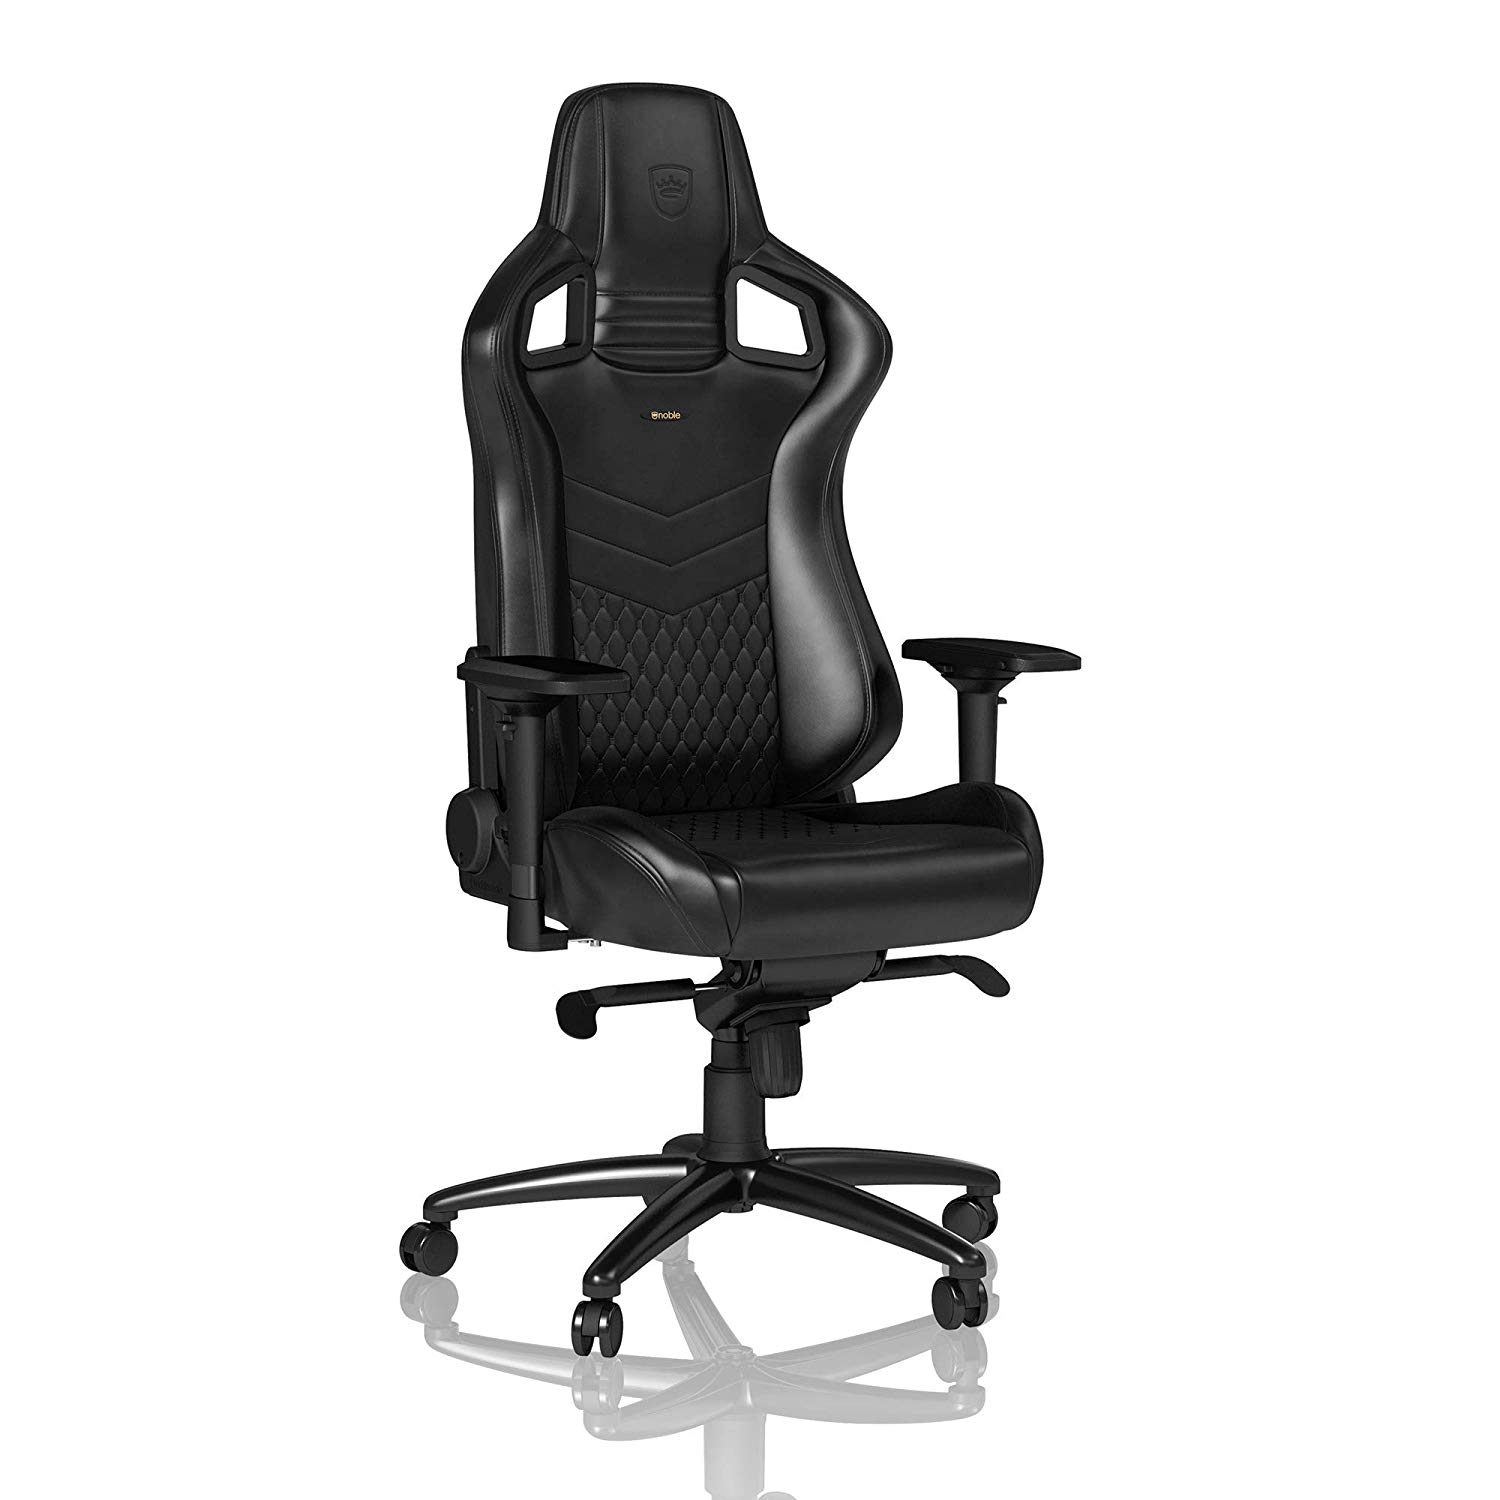 6. noblechairs Epic Gaming Chair - Office Chair - Desk Chair - Nappa Leather – Black